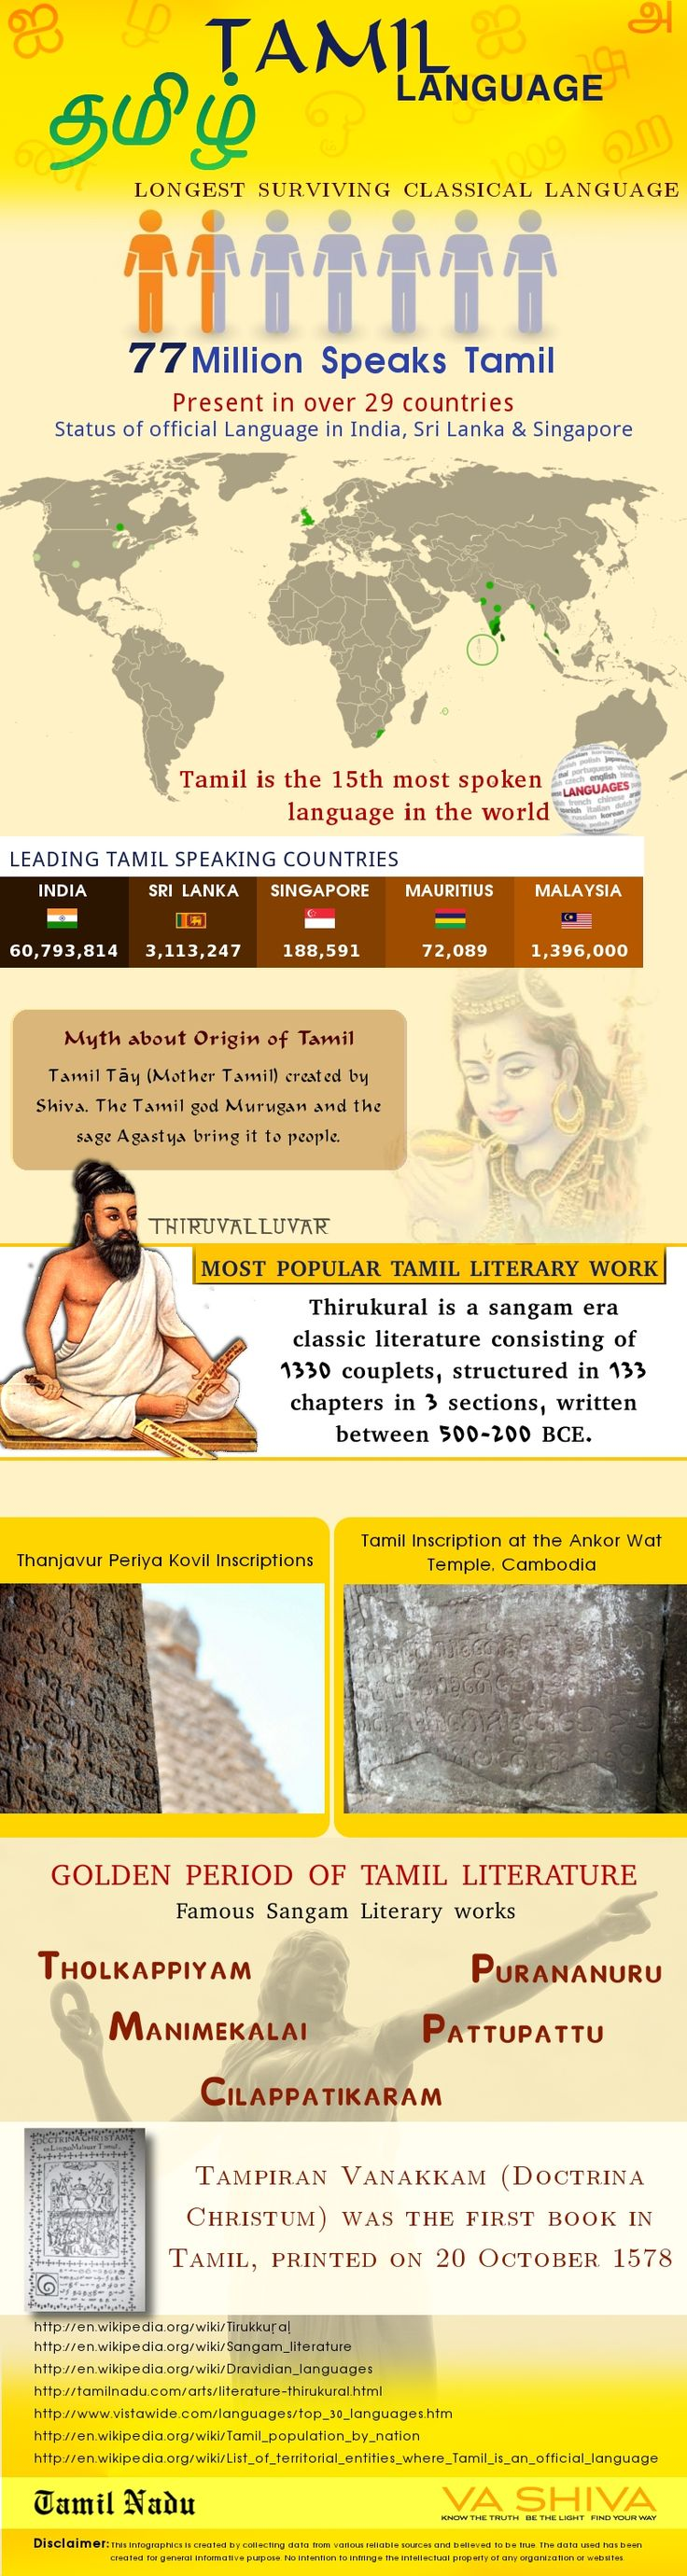 best ideas about tamil language dravidian amazing tamil do you know that tamil is the world s oldest living language